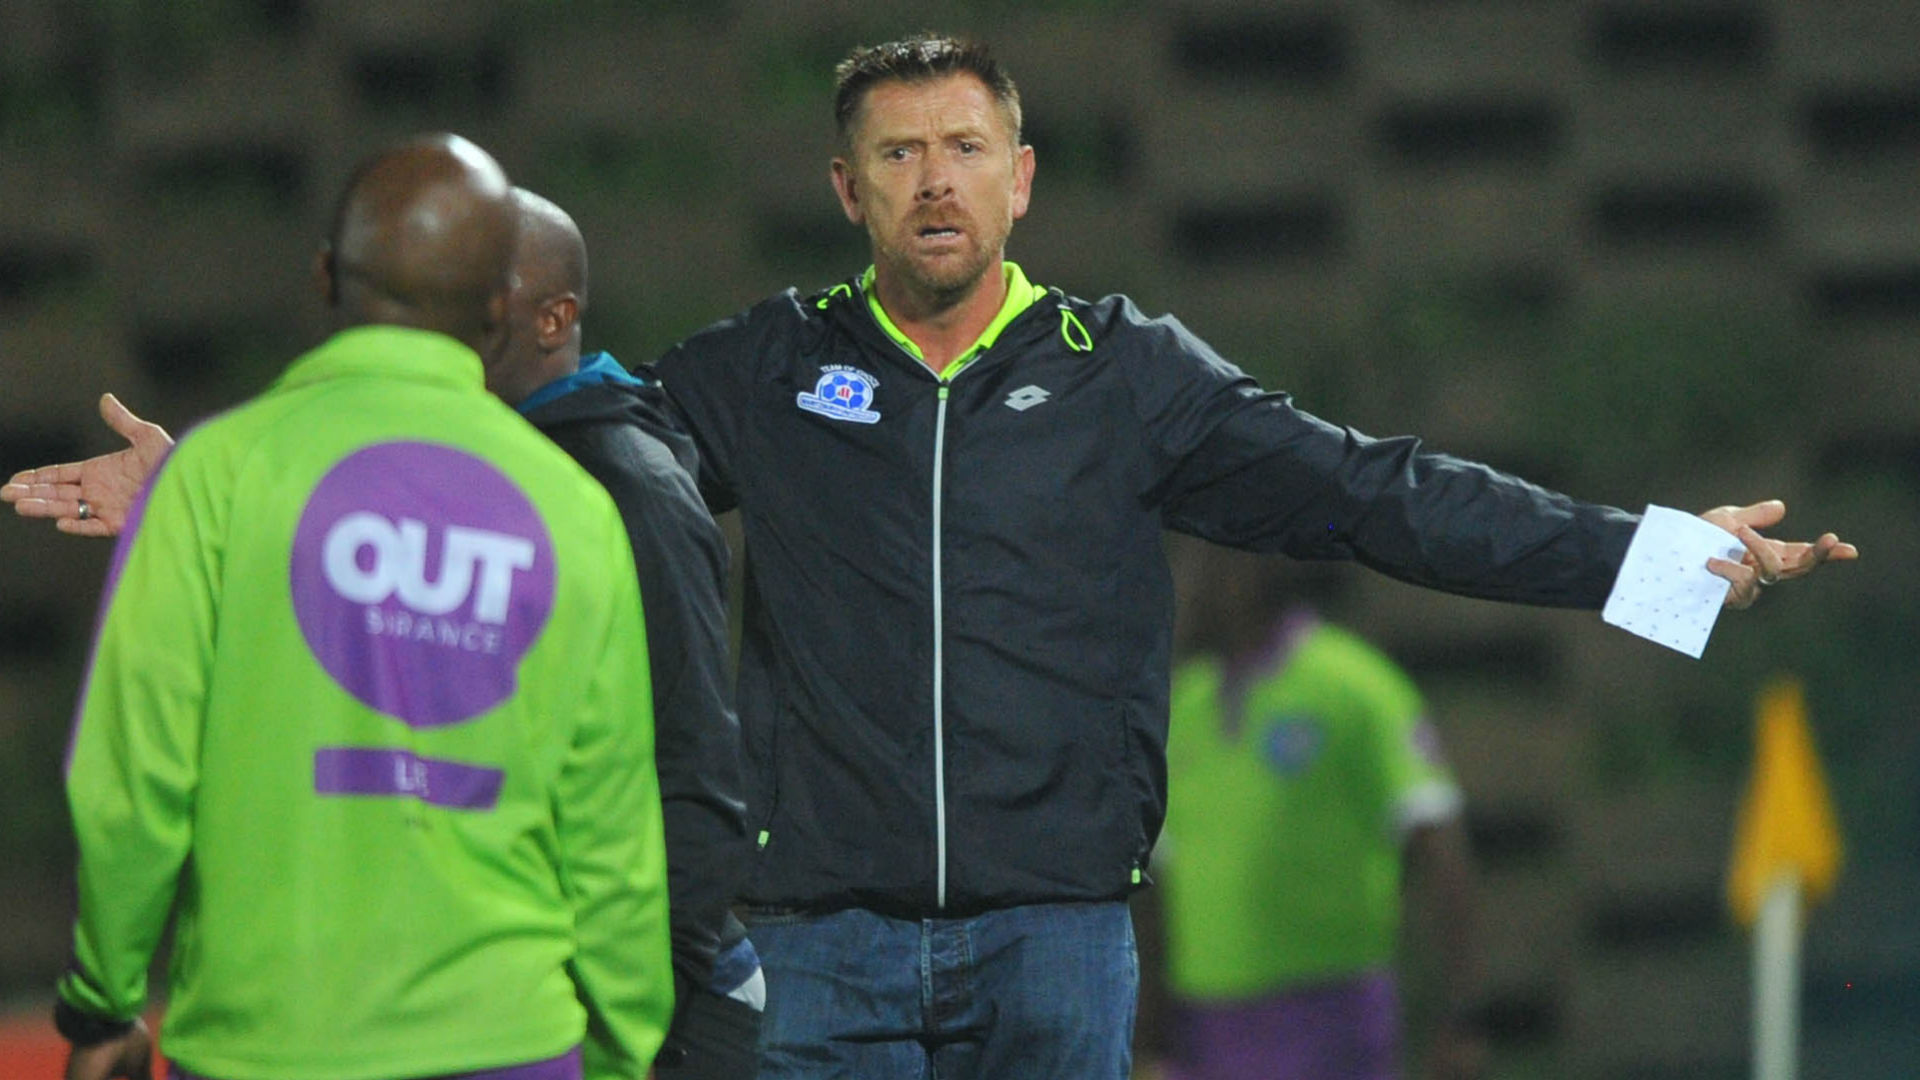 There are no guarantees for Mamelodi Sundowns in the PSL - Tinkler